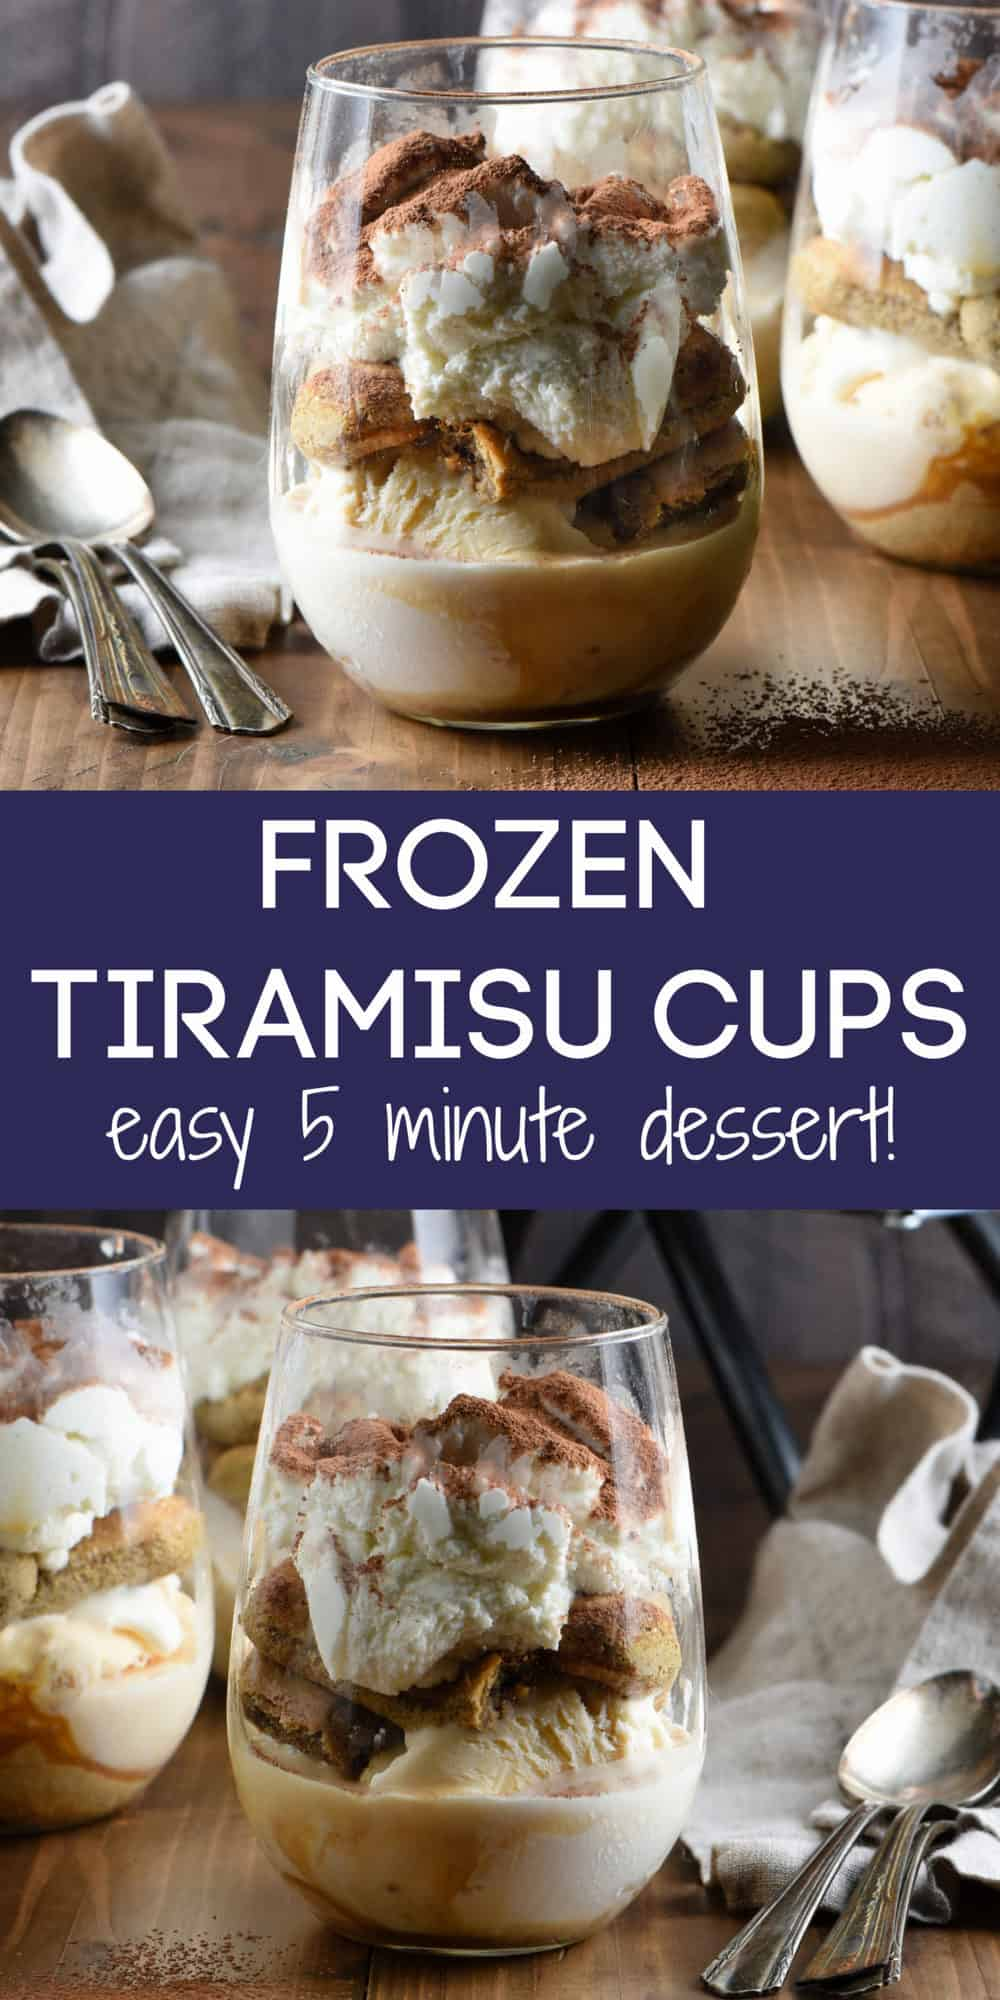 Collage of images of tiramisu trifle glasses with overlay: FROZEN TIRAMISU CUPS easy 5 minute dessert!